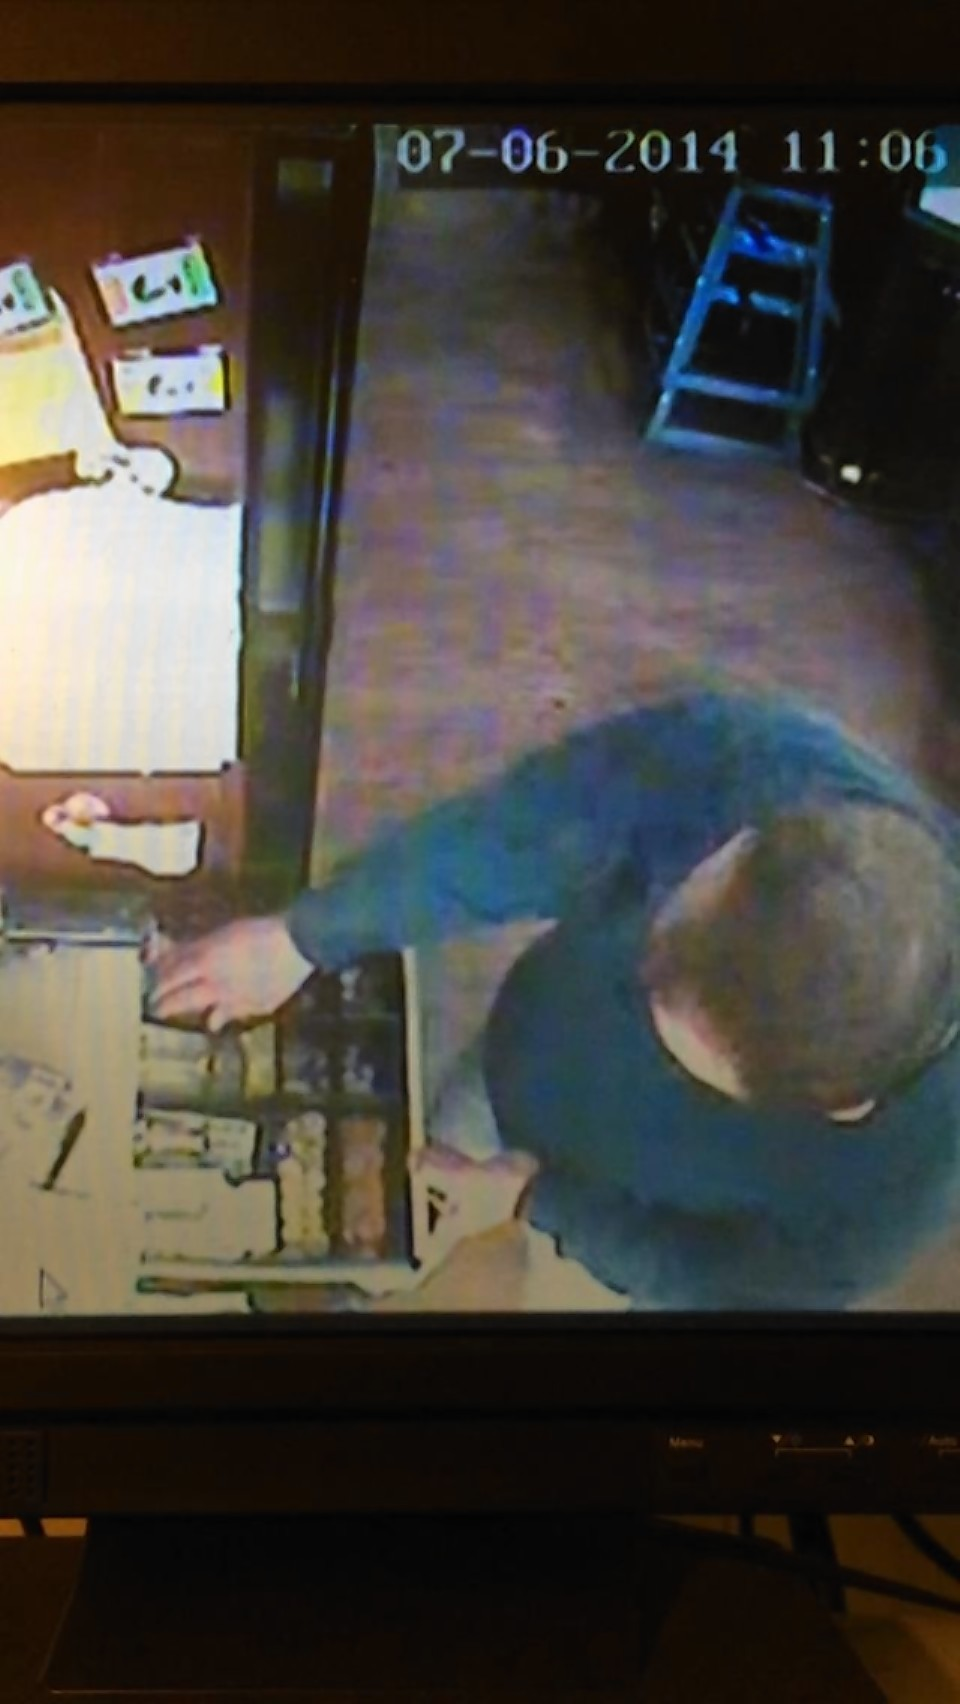 Police are searching for the man seen in this CCTV image in La Lombarda restaurant, Aberdeen